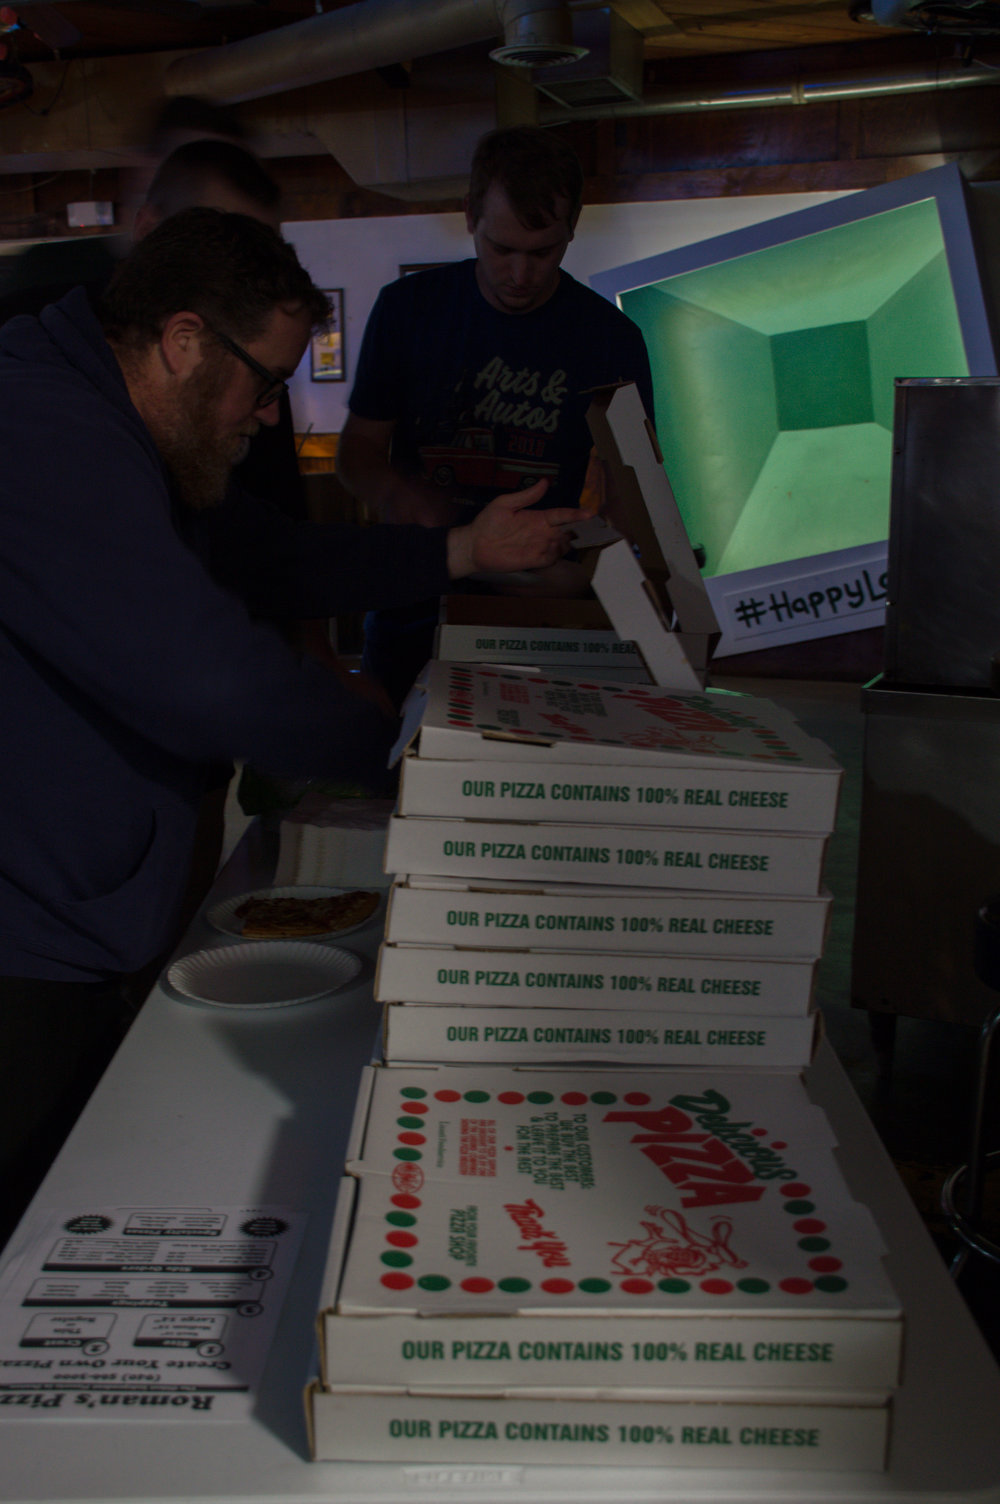 Free pizza was given out for all the fans